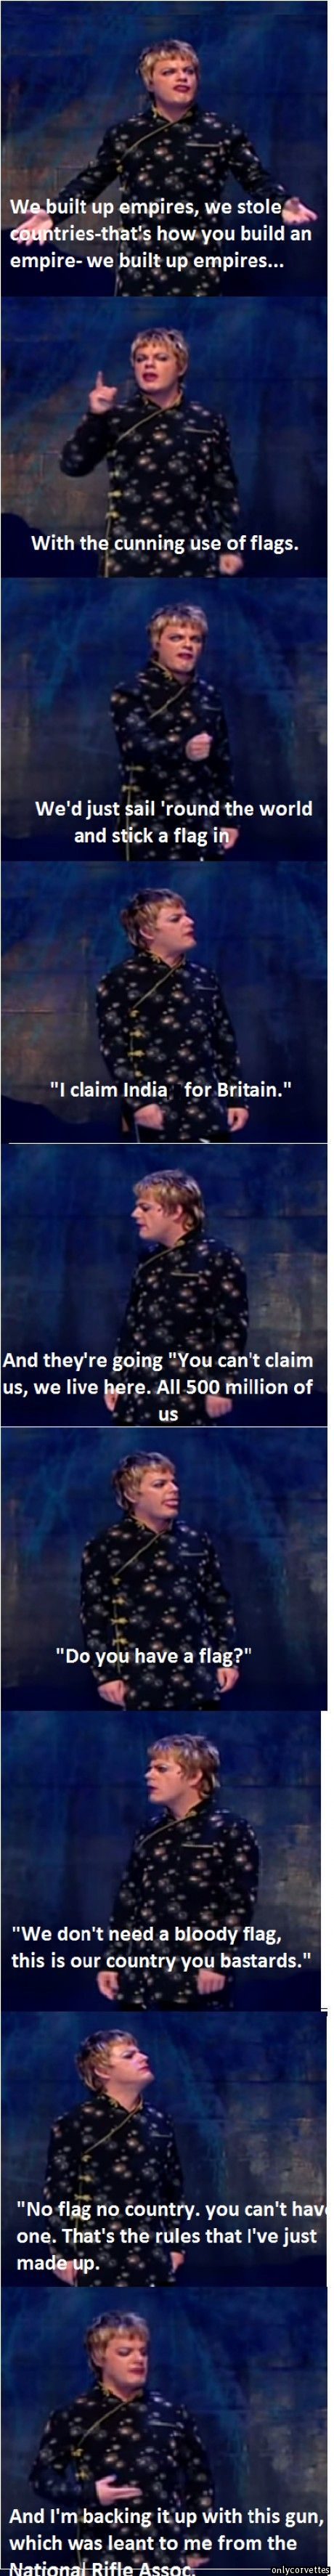 Eddie Izzard - God bless this hilarious man!